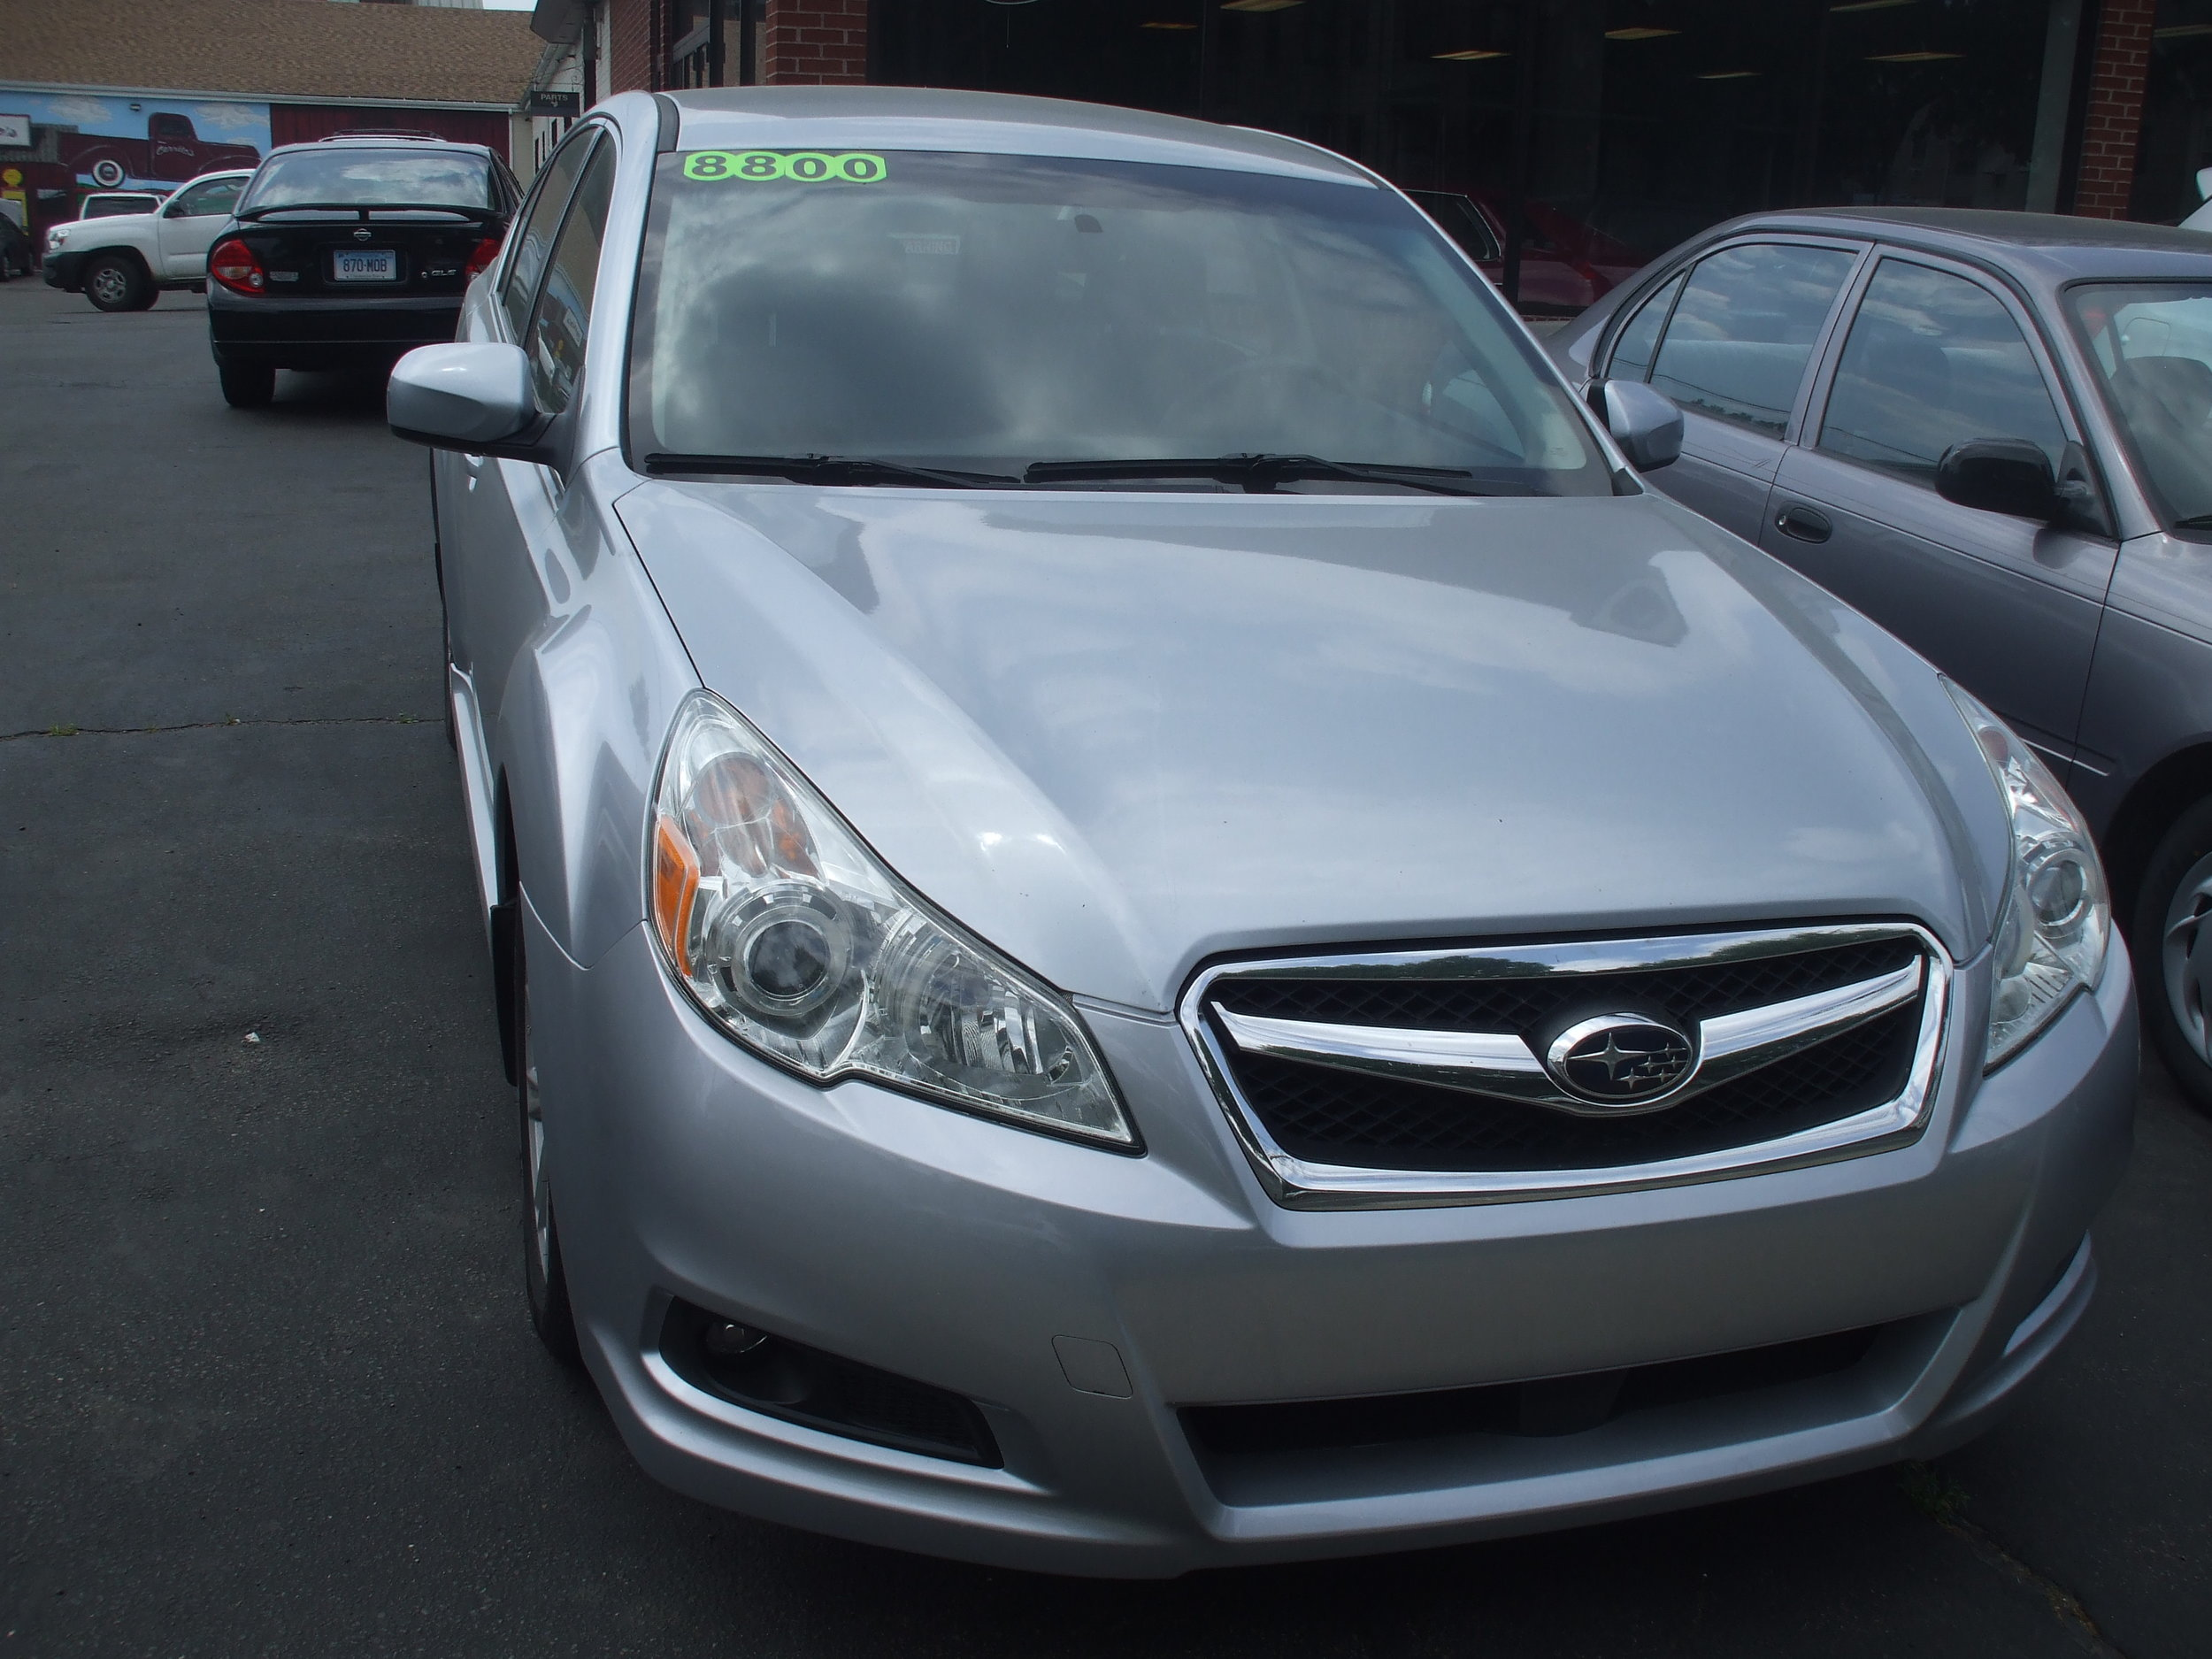 2012 Subaru Legacy $ 8,800  4door Silver Great Condition 6spd AWD Warranty Stock # 17148 117k Call or Stop by Cerrito's Auto Sales 280 N colony St Wallingford Ct 06492 203-265-6142